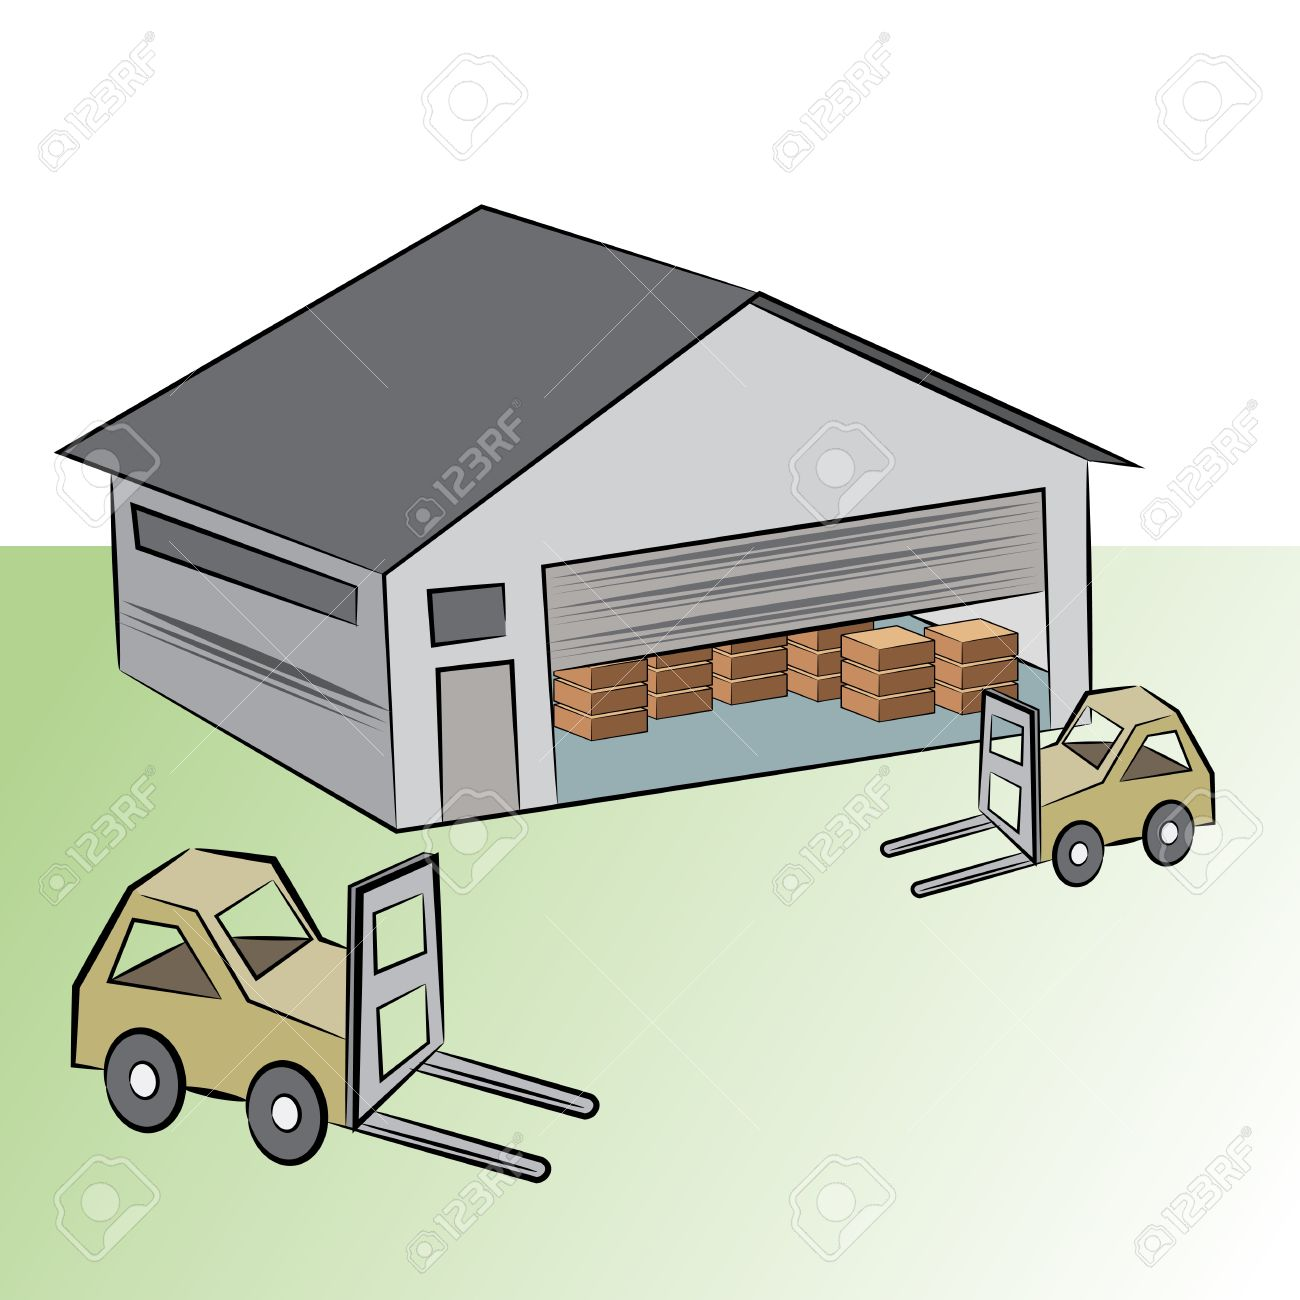 An Image Of A Warehouse Building With Crate Lifting Vehicles.